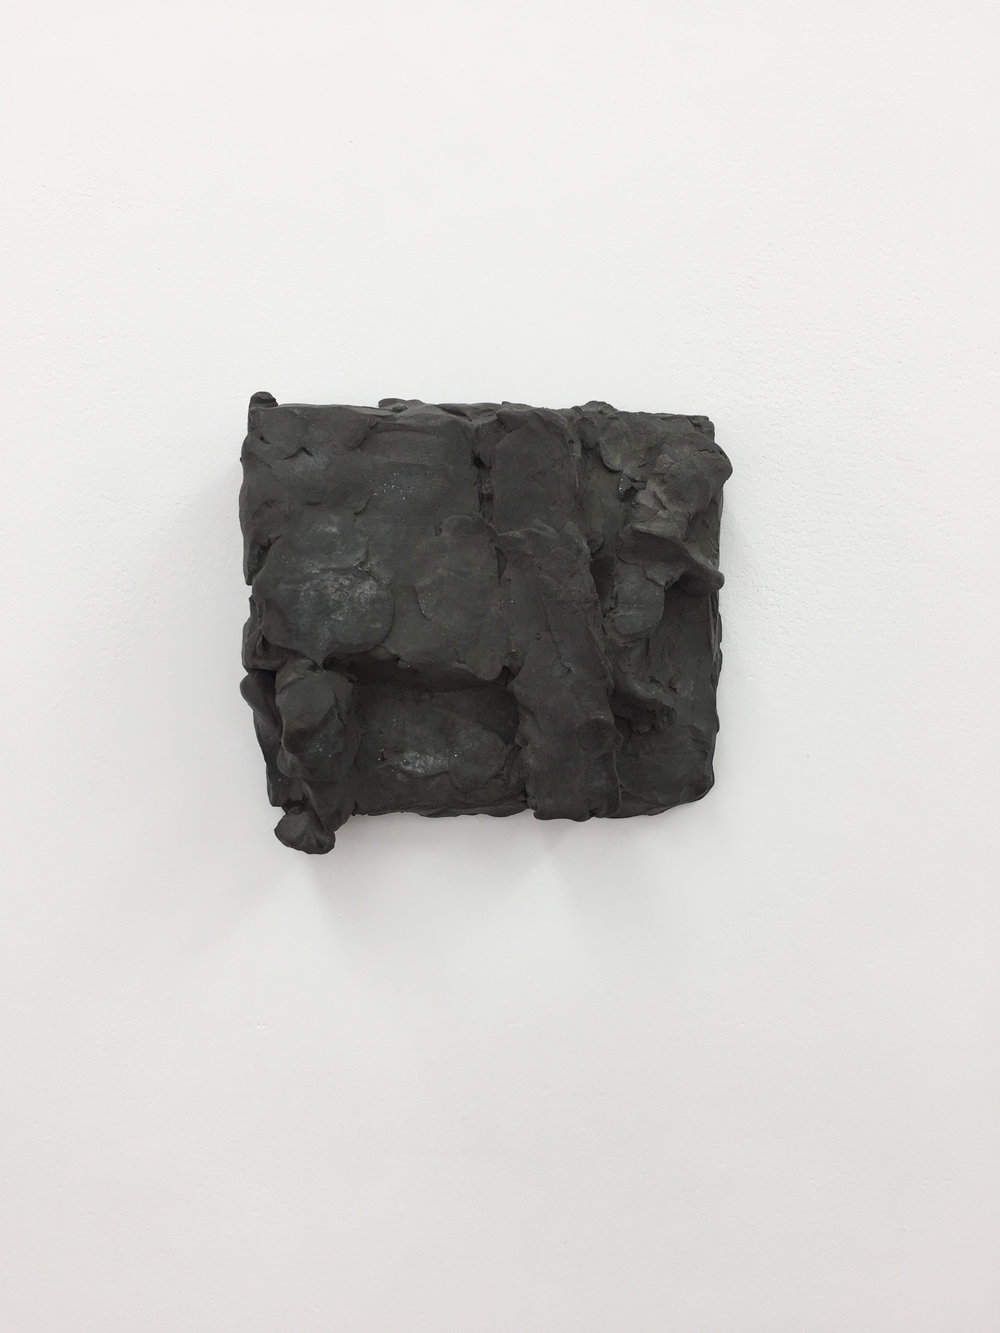 Hans Josephsohn, Untitled, 1997, Relief sketch, Brass, 13 x 14 x 6 cm